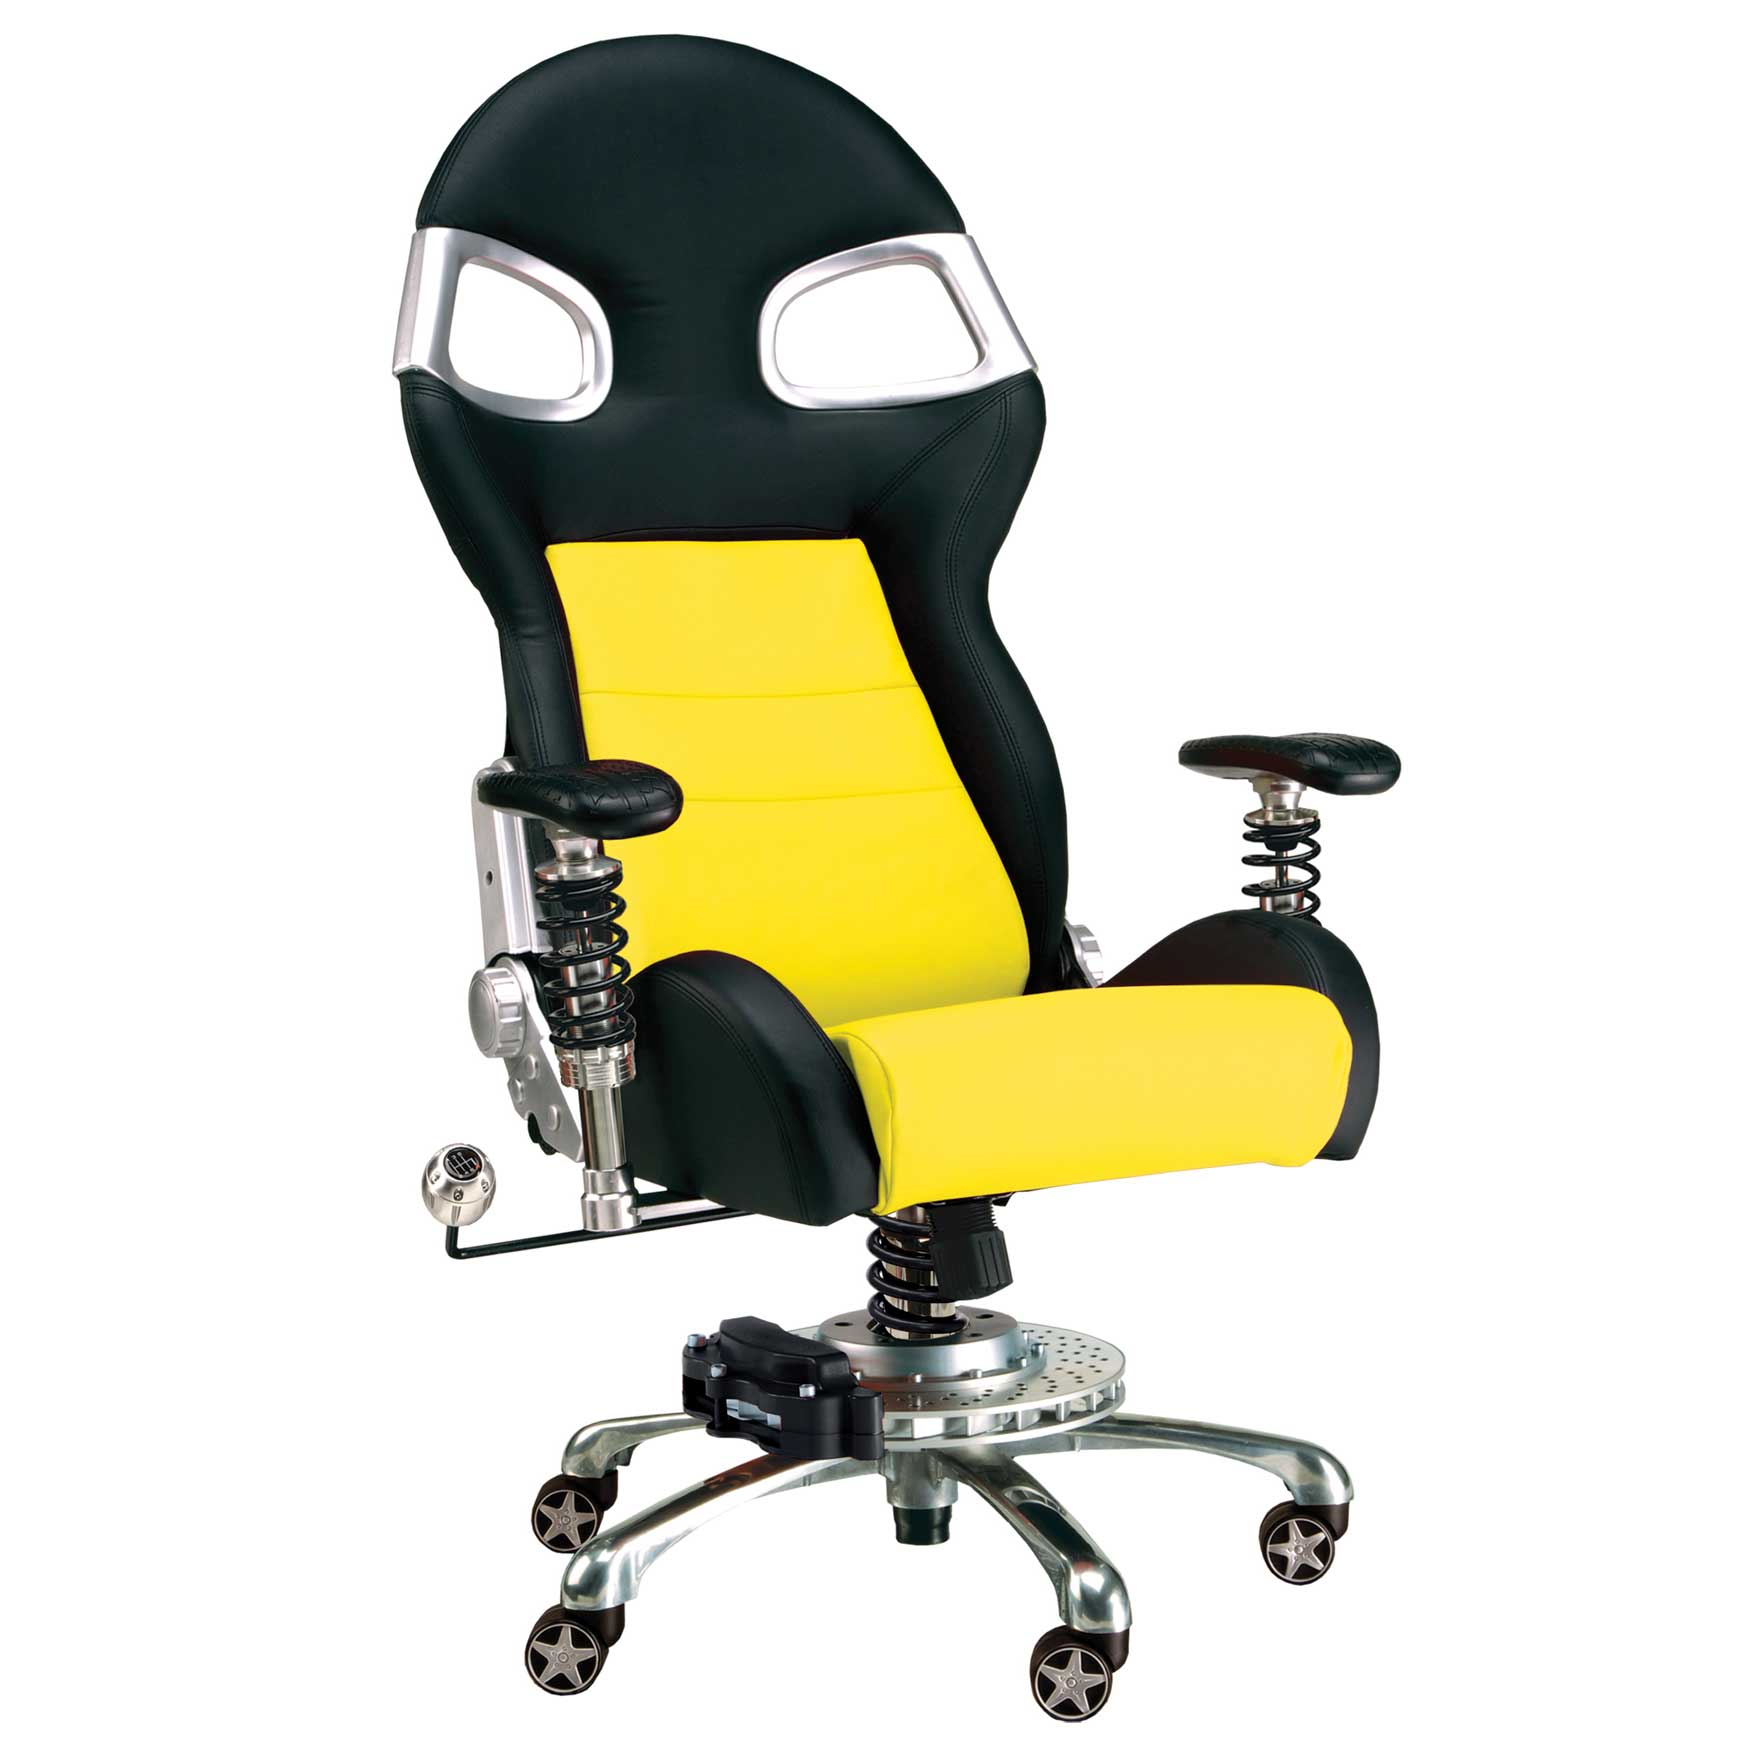 sporty adjustable height chair design